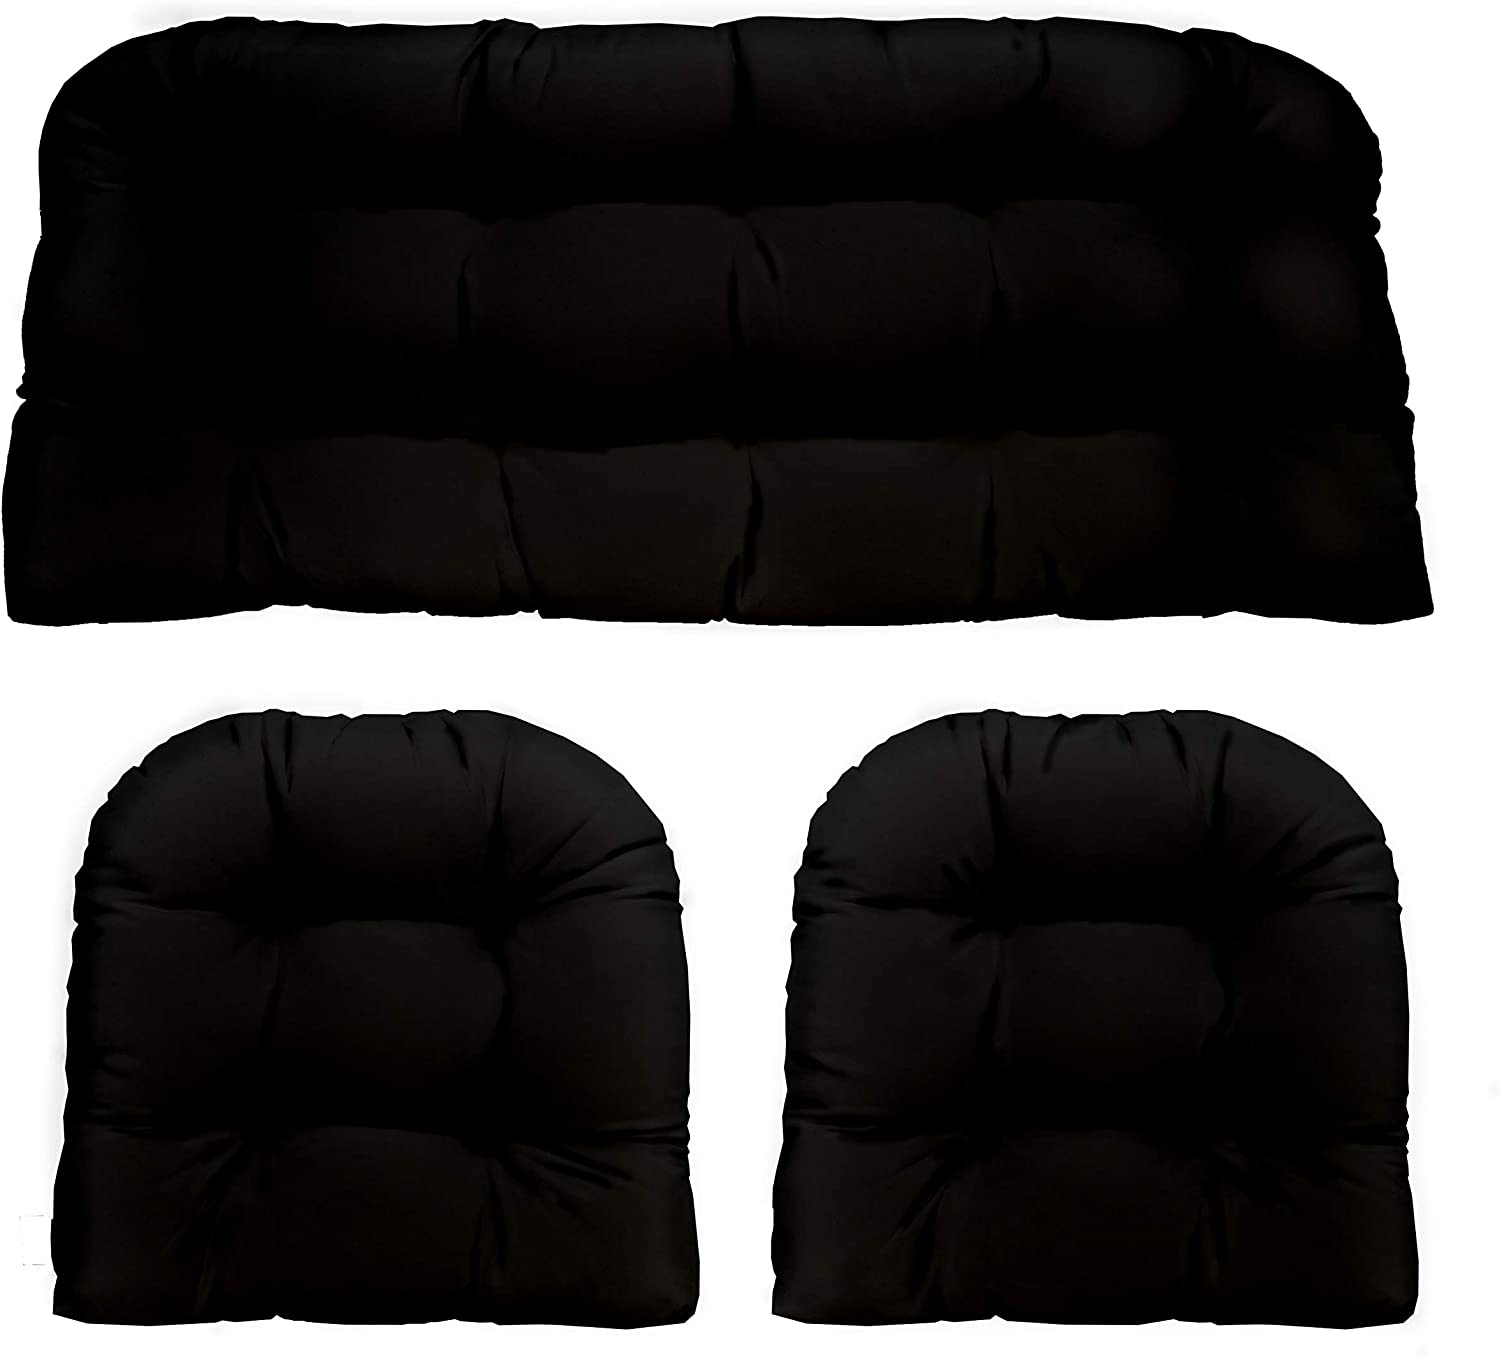 3 Piece Wicker Cushion Set - Indoor / Outdoor Black Solid Fabric Cushion for Wicker Loveseat Settee & 2 Matching Chair Cushions